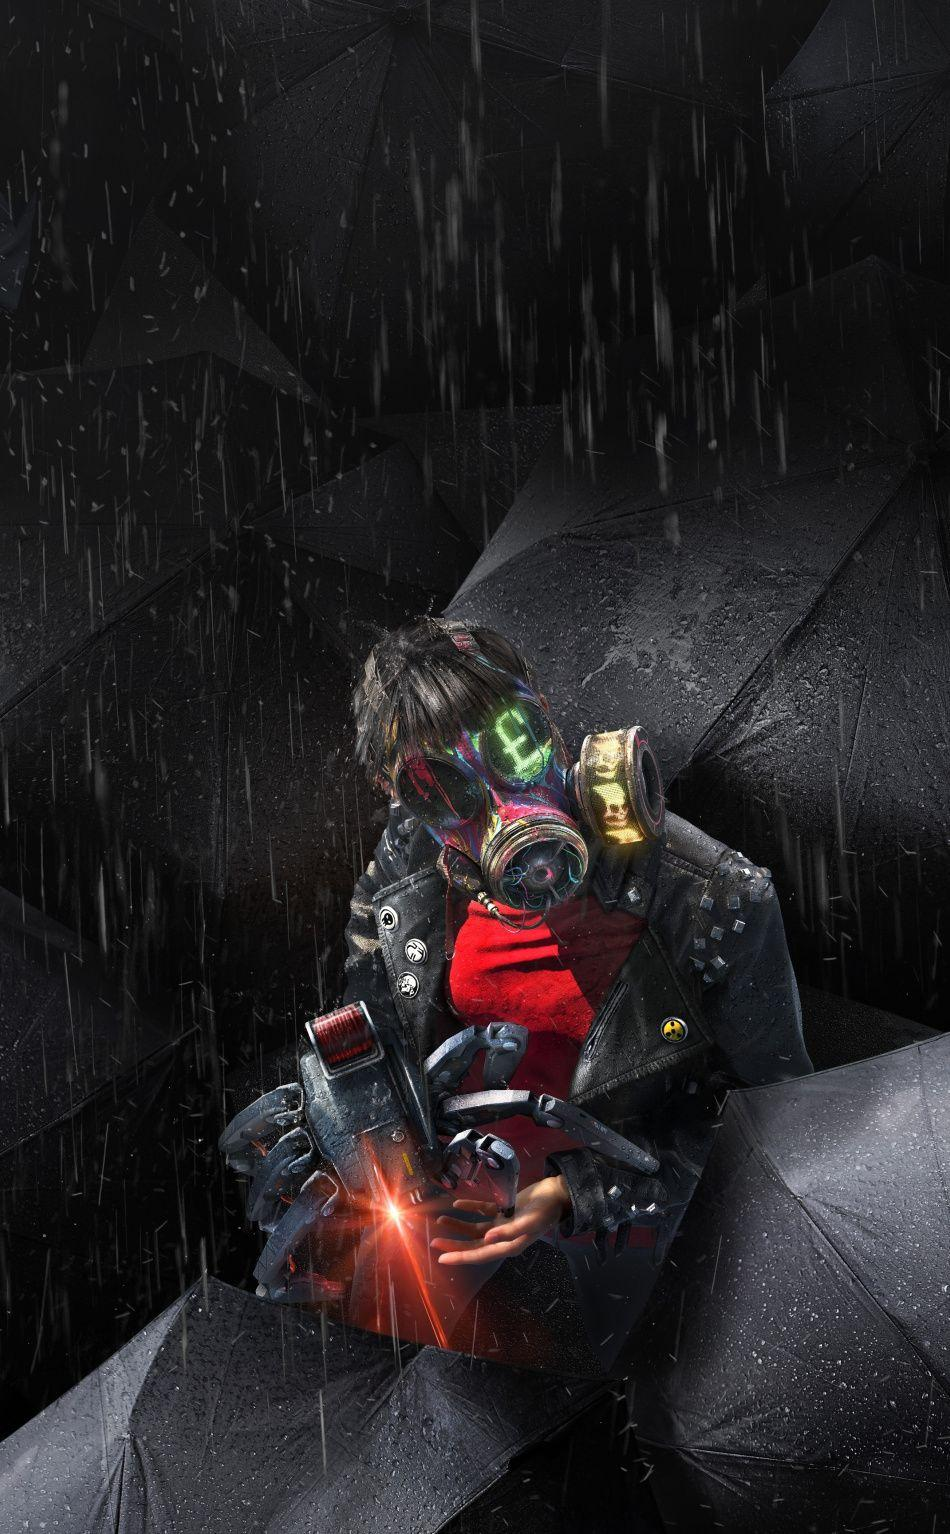 Watch Dogs Legion Game 2020 Wallpapers - Wallpaper Cave